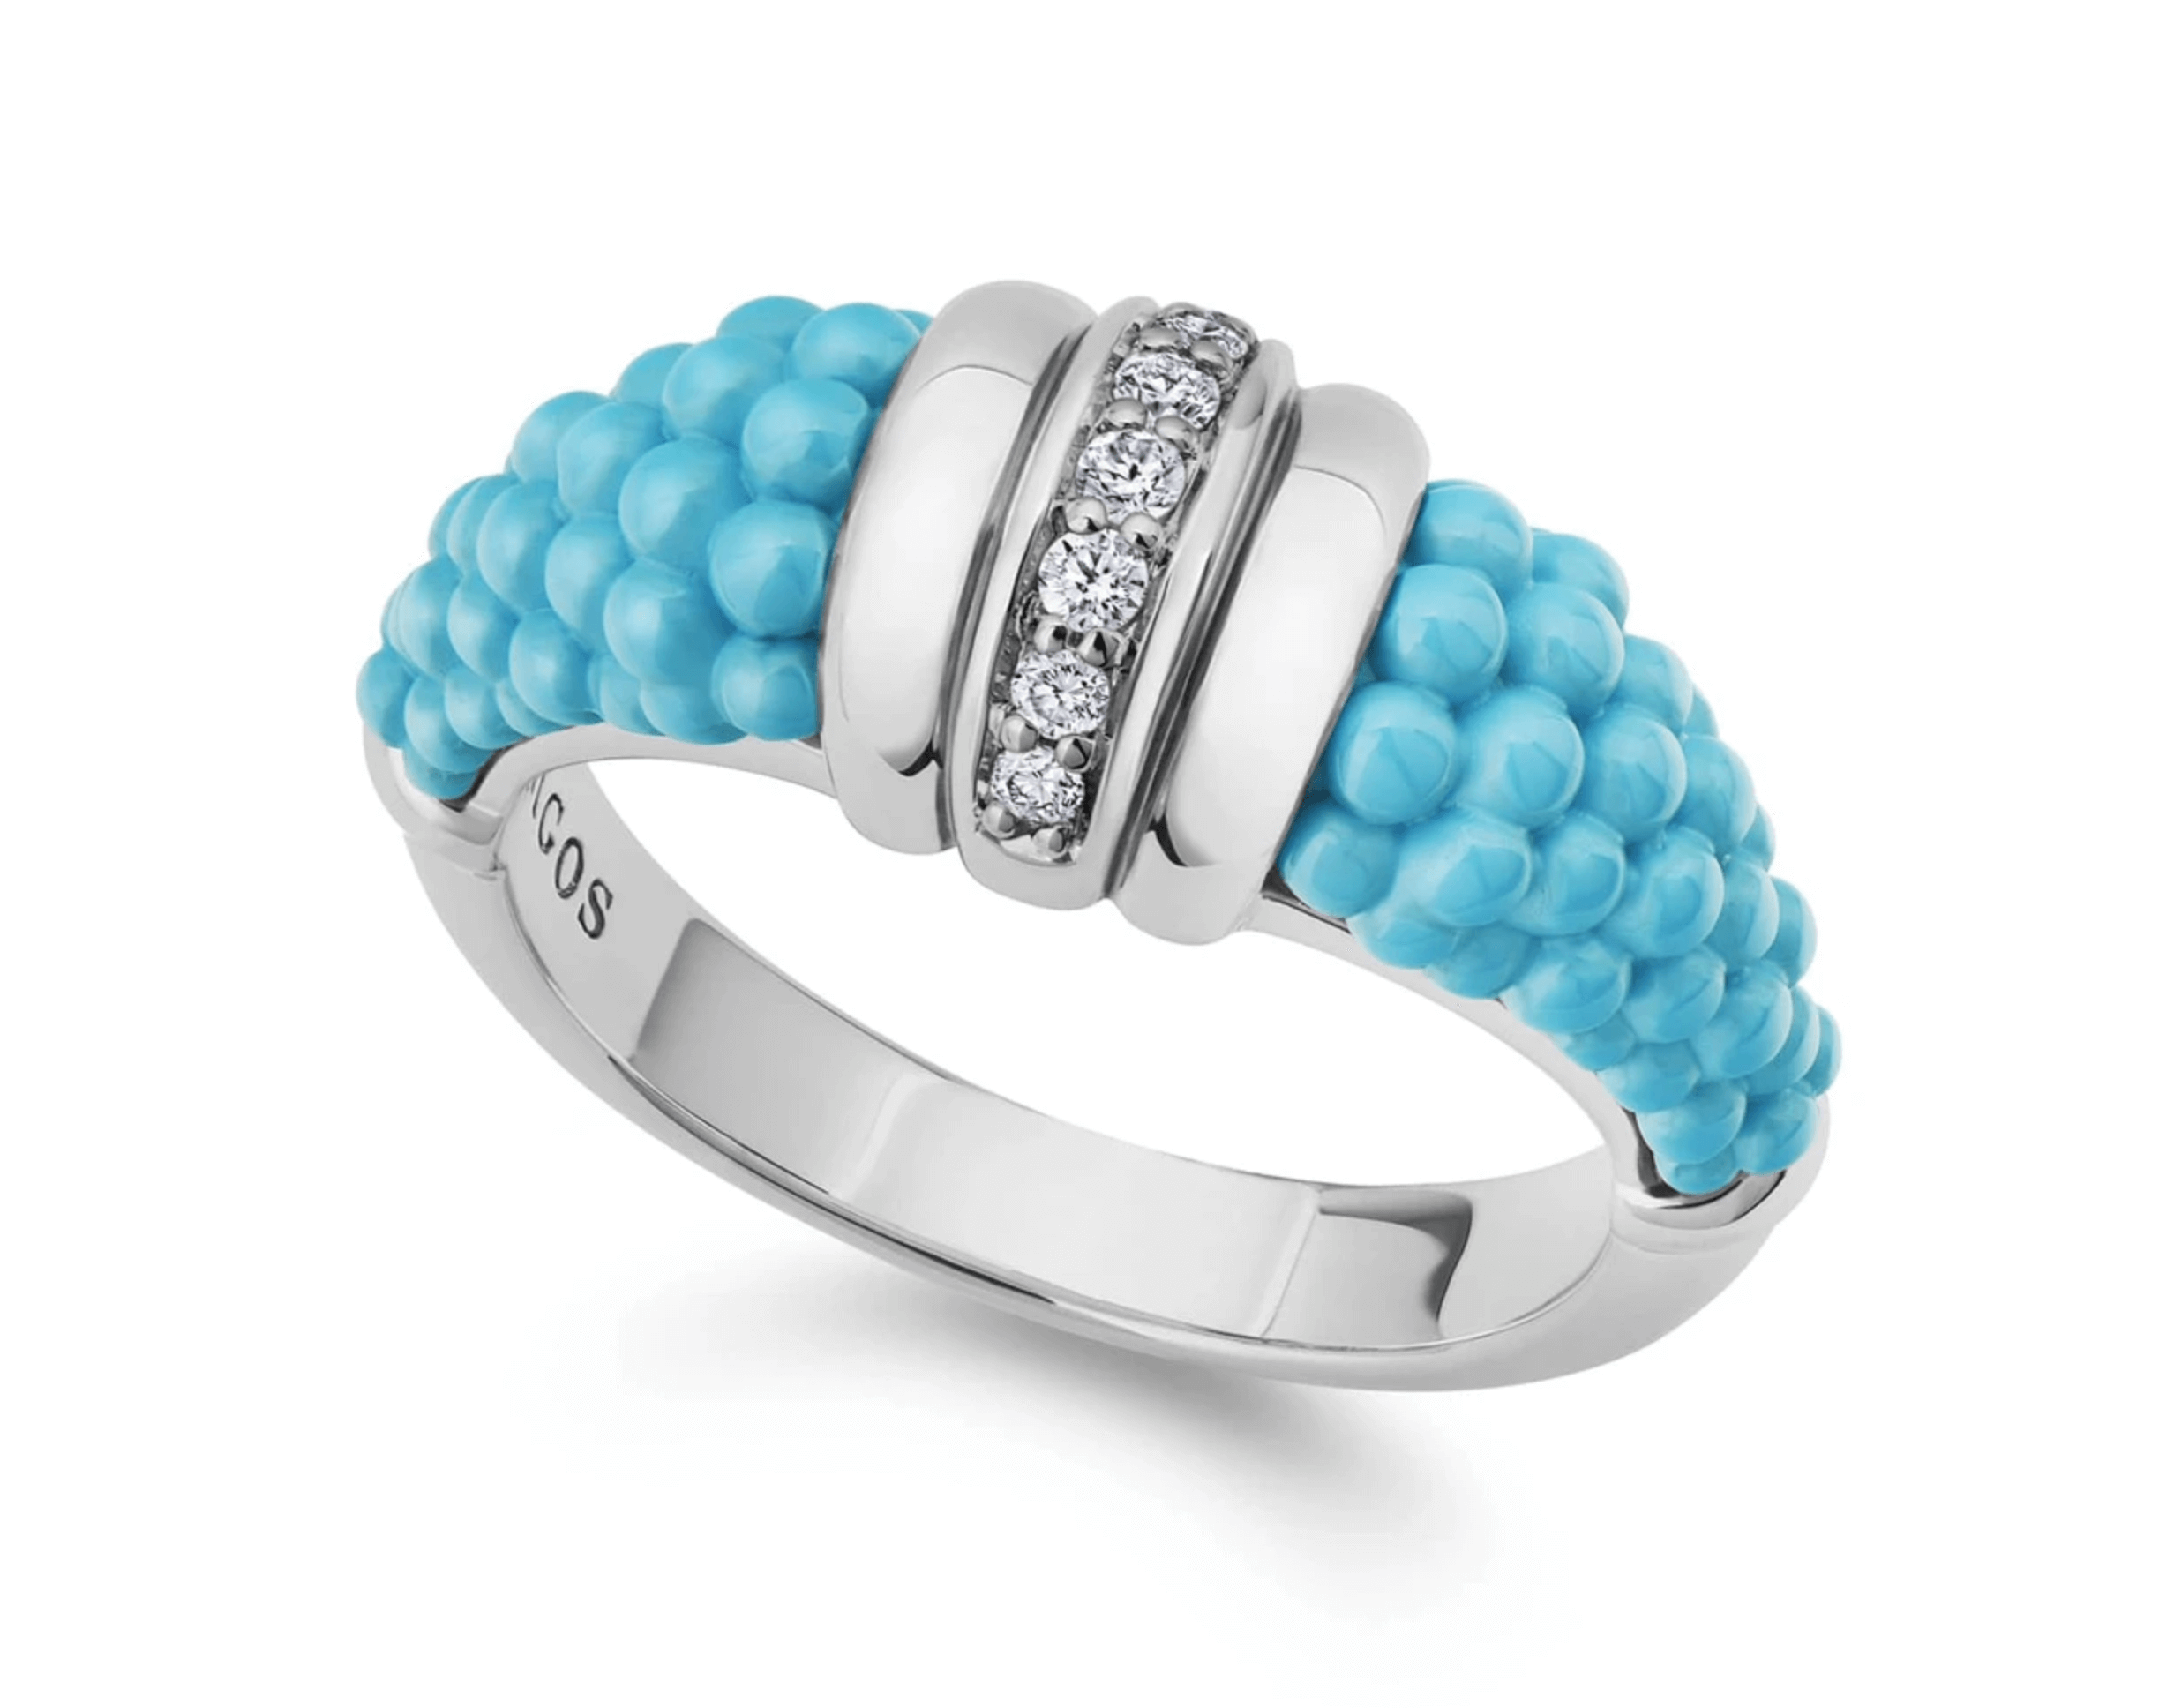 Lagos Blue Caviar fashion ring with sterling silver and diamonds